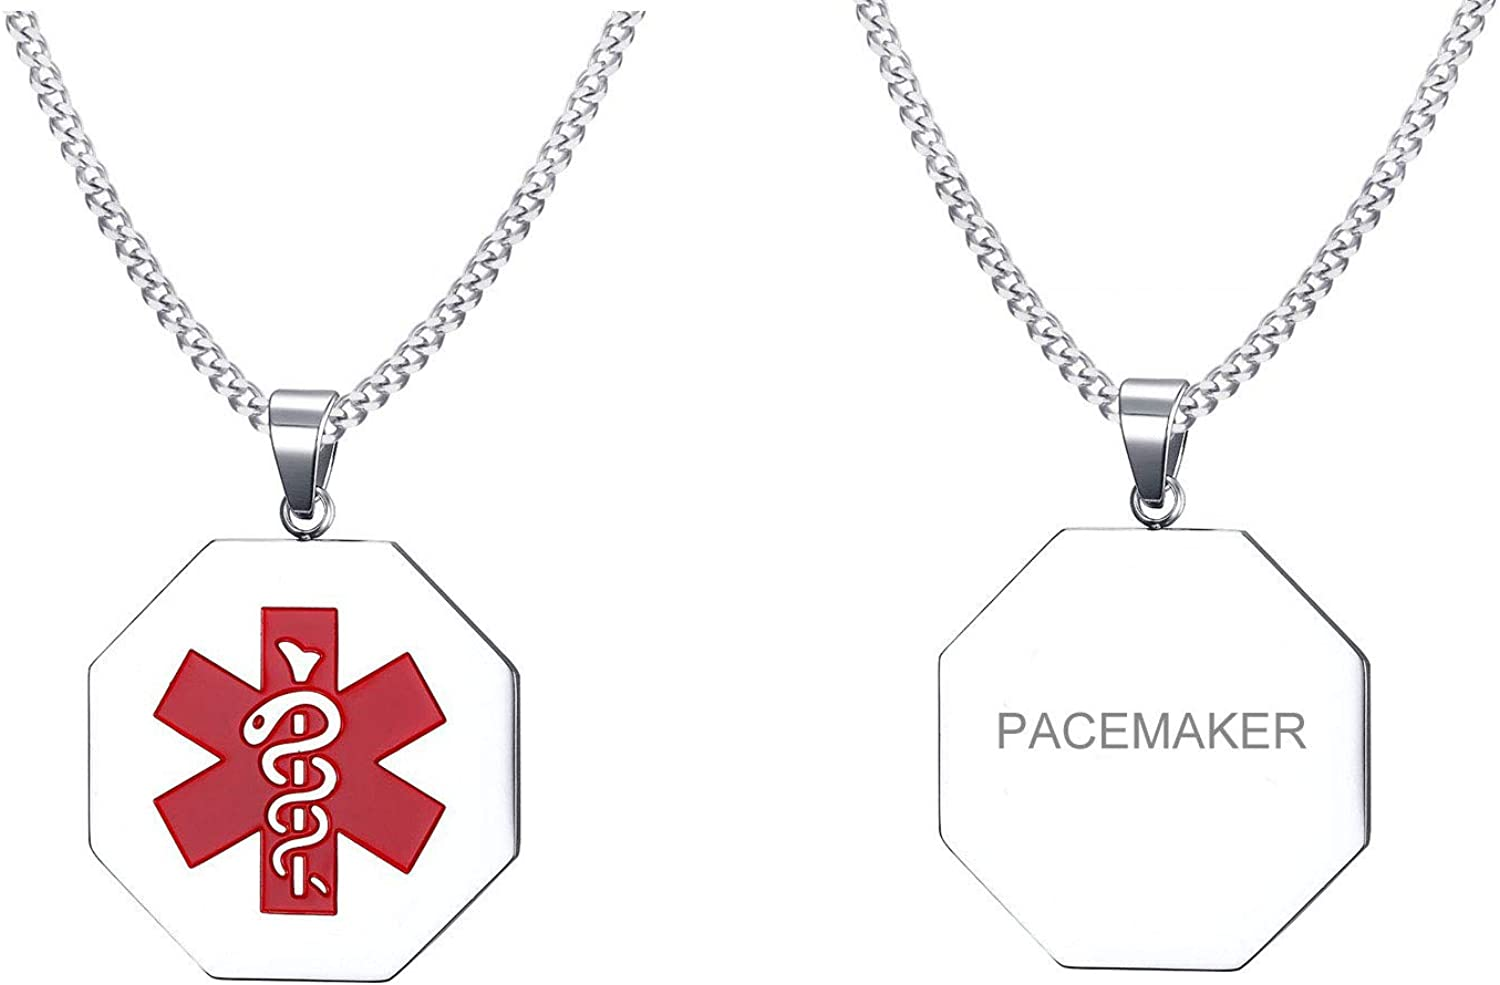 VNOX Customize Stainless Steel Medical Alert ID Hexagonal Pendant Necklace for Men Women,Free Chain 24""